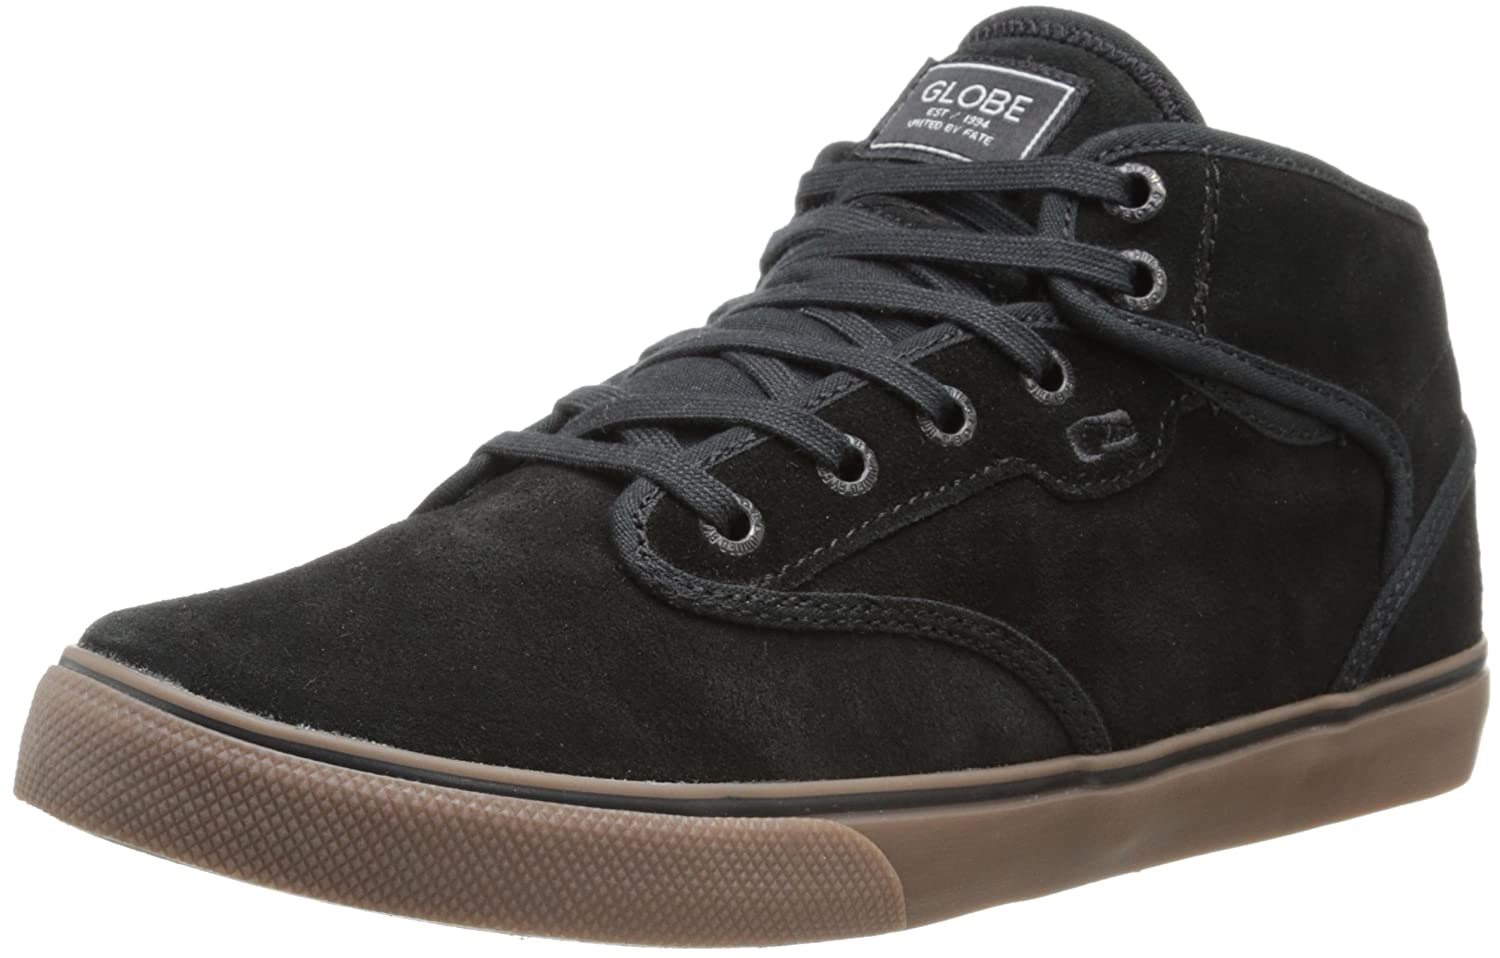 Black Mid Skate Shoes